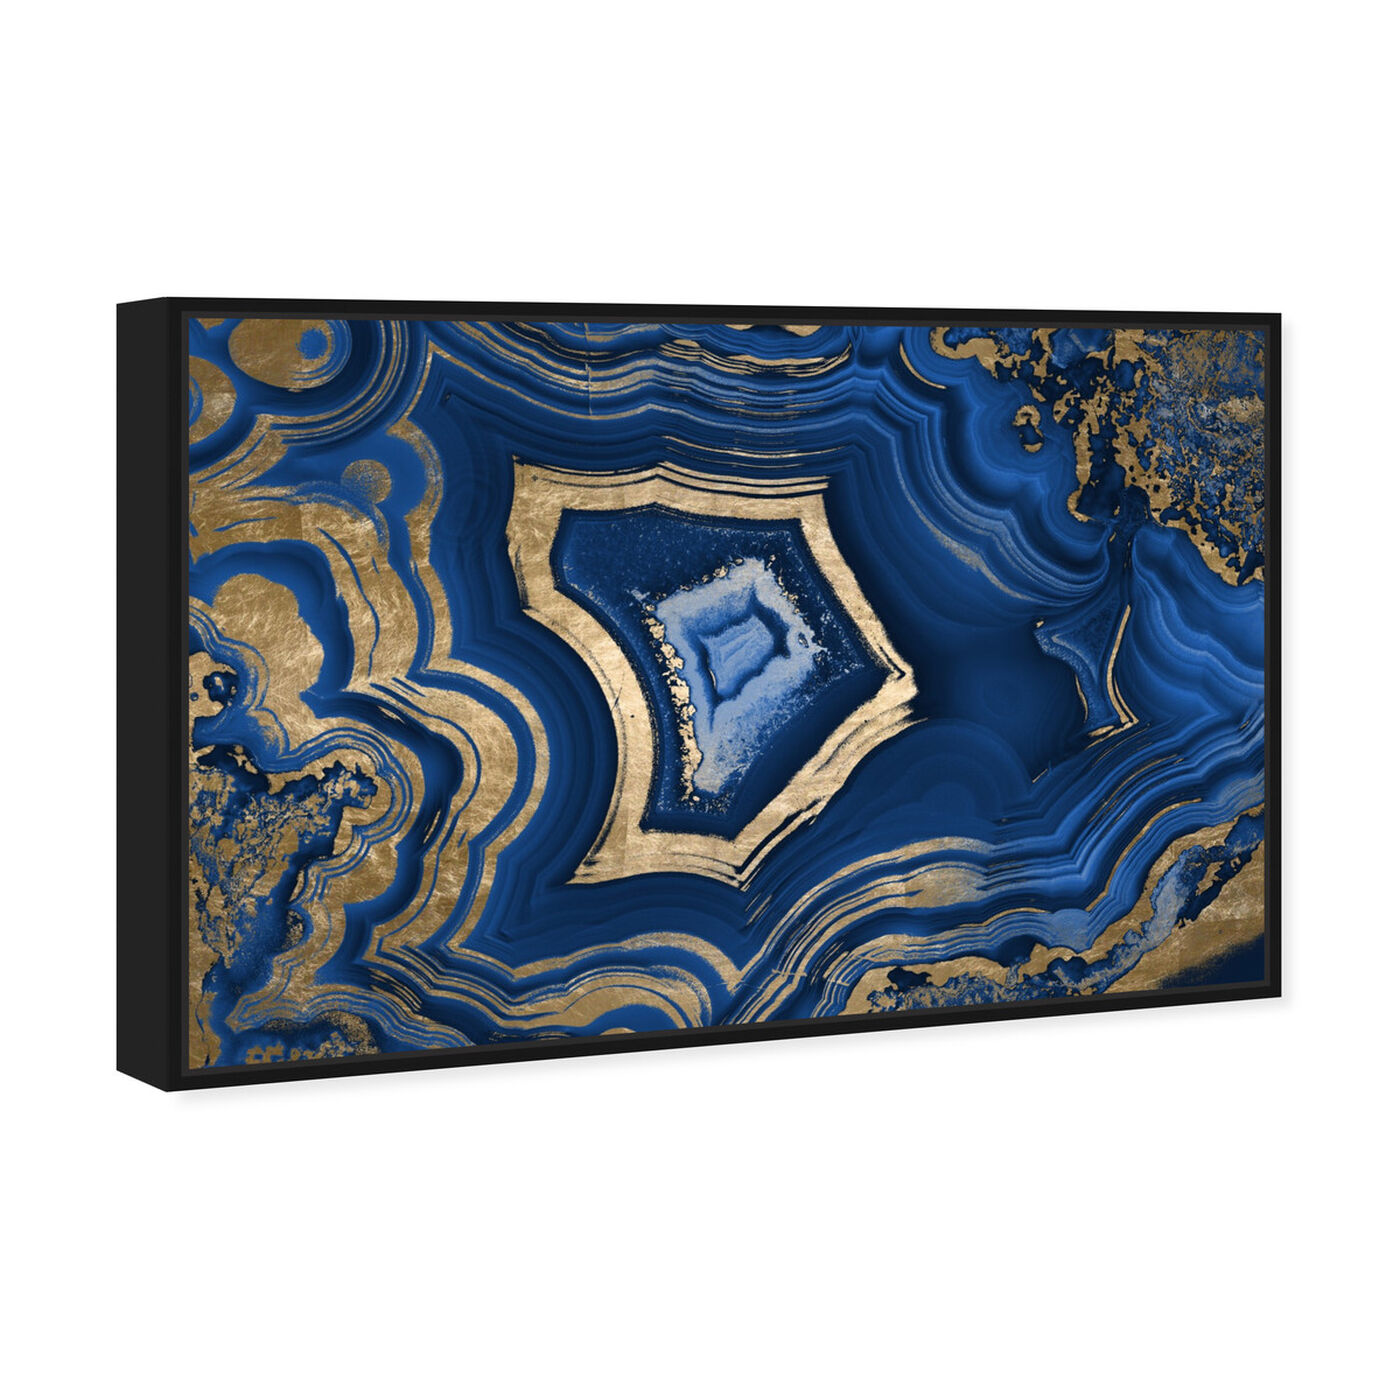 Angled view of Blue Geode featuring abstract and crystals art.